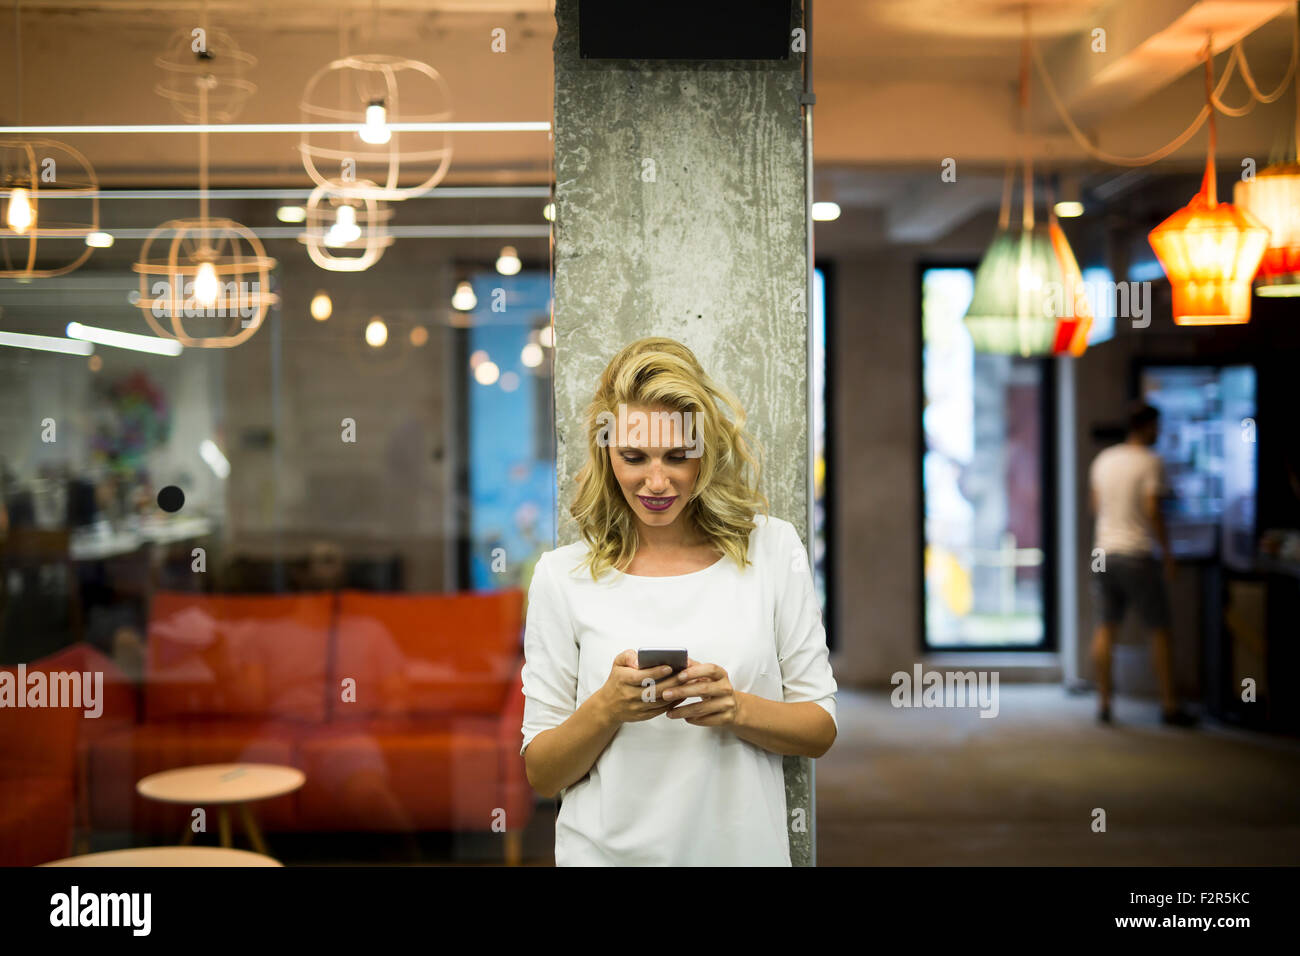 Young woman with mobile phone Photo Stock